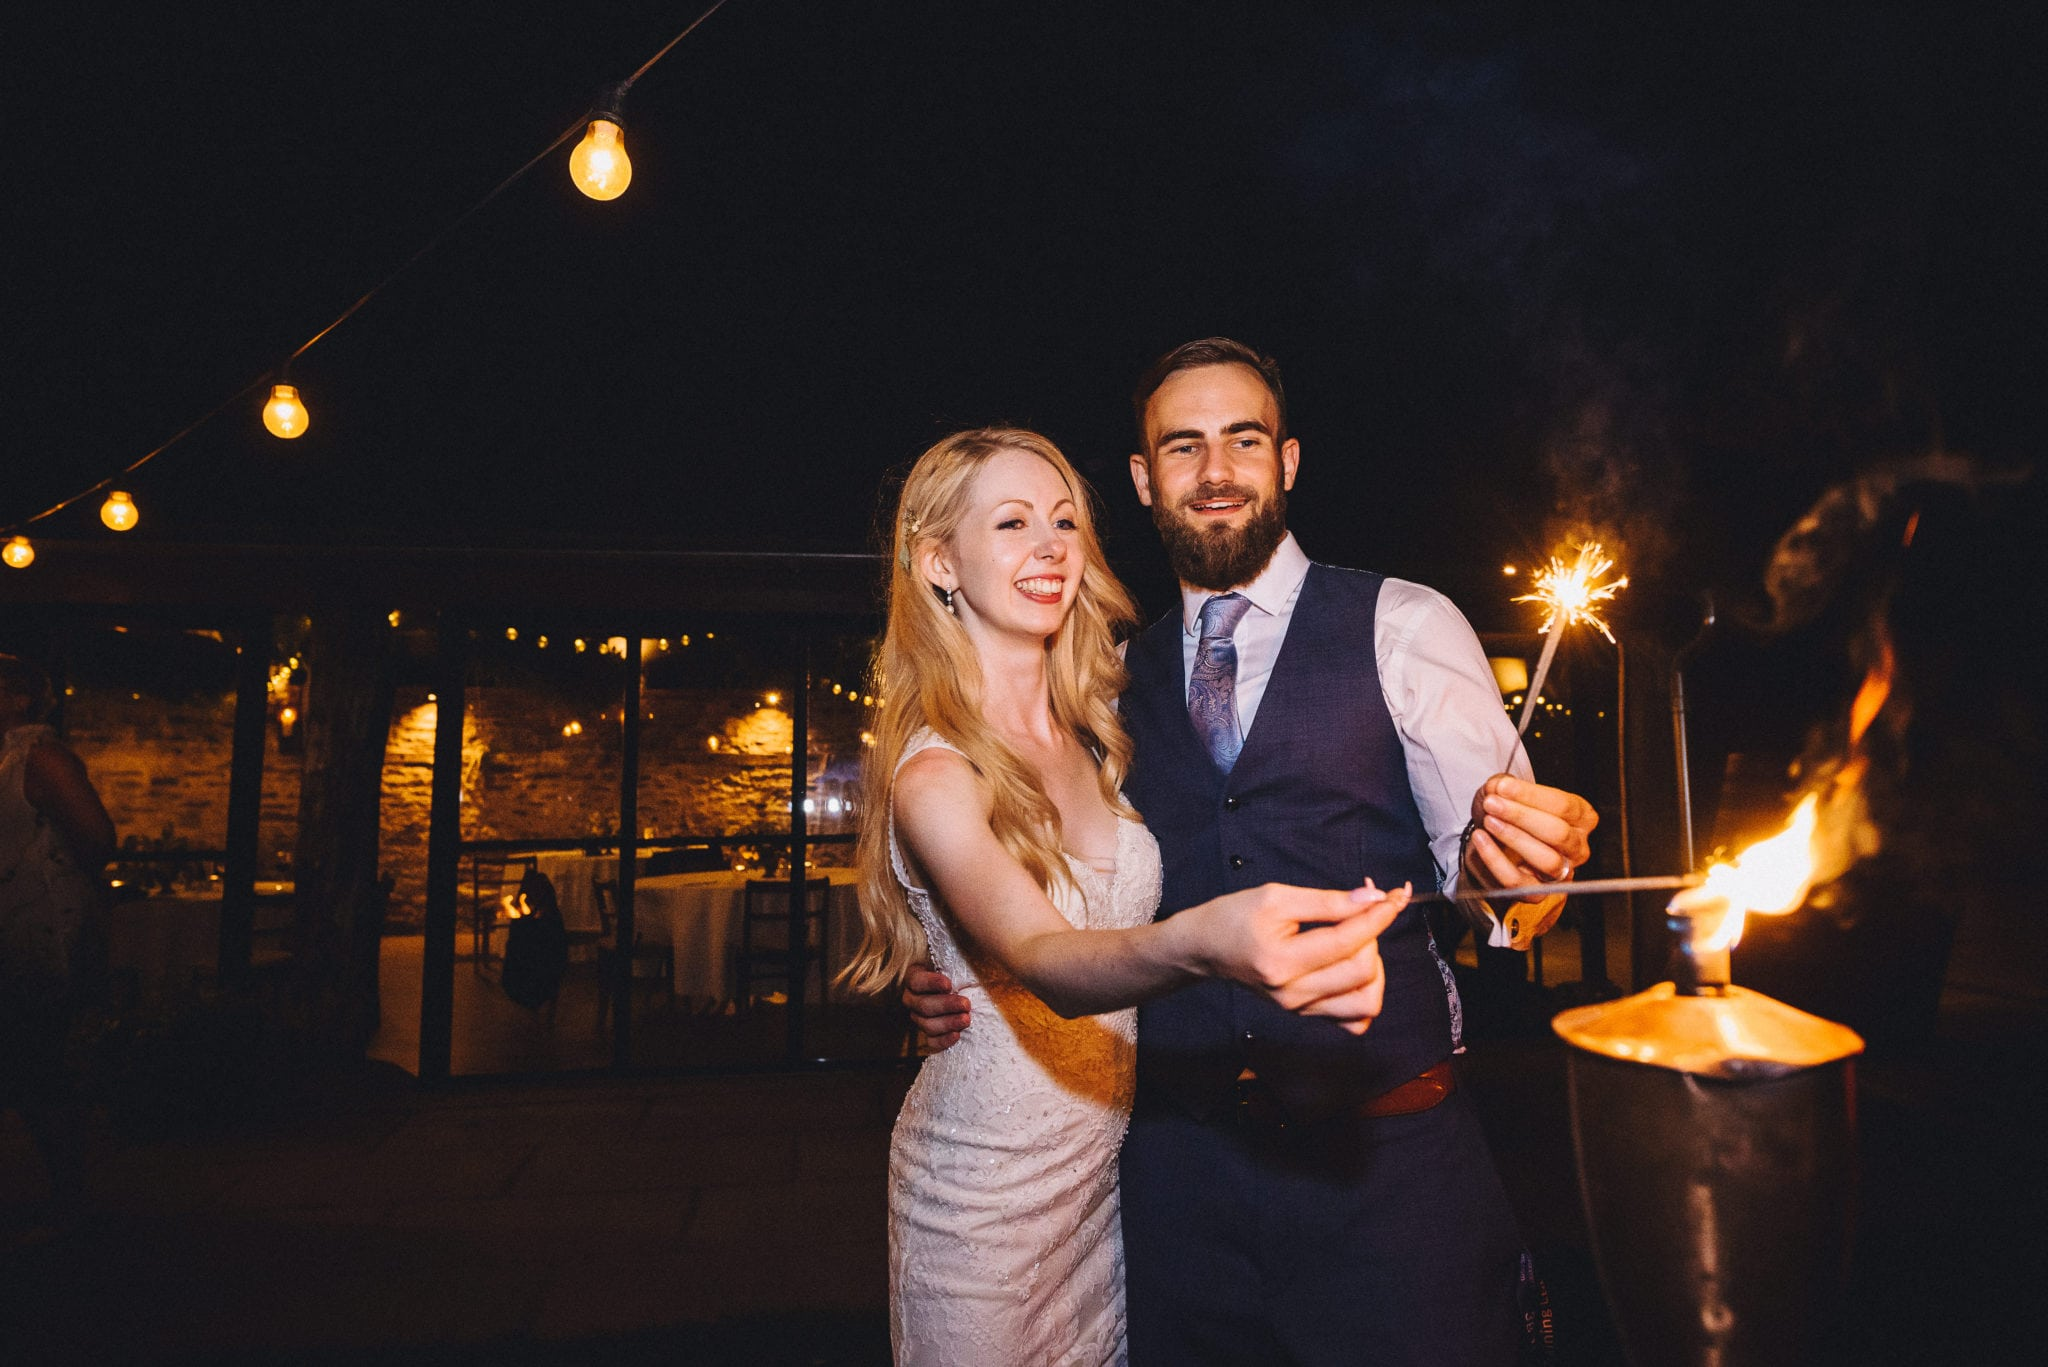 Bride and groom hold sparklers